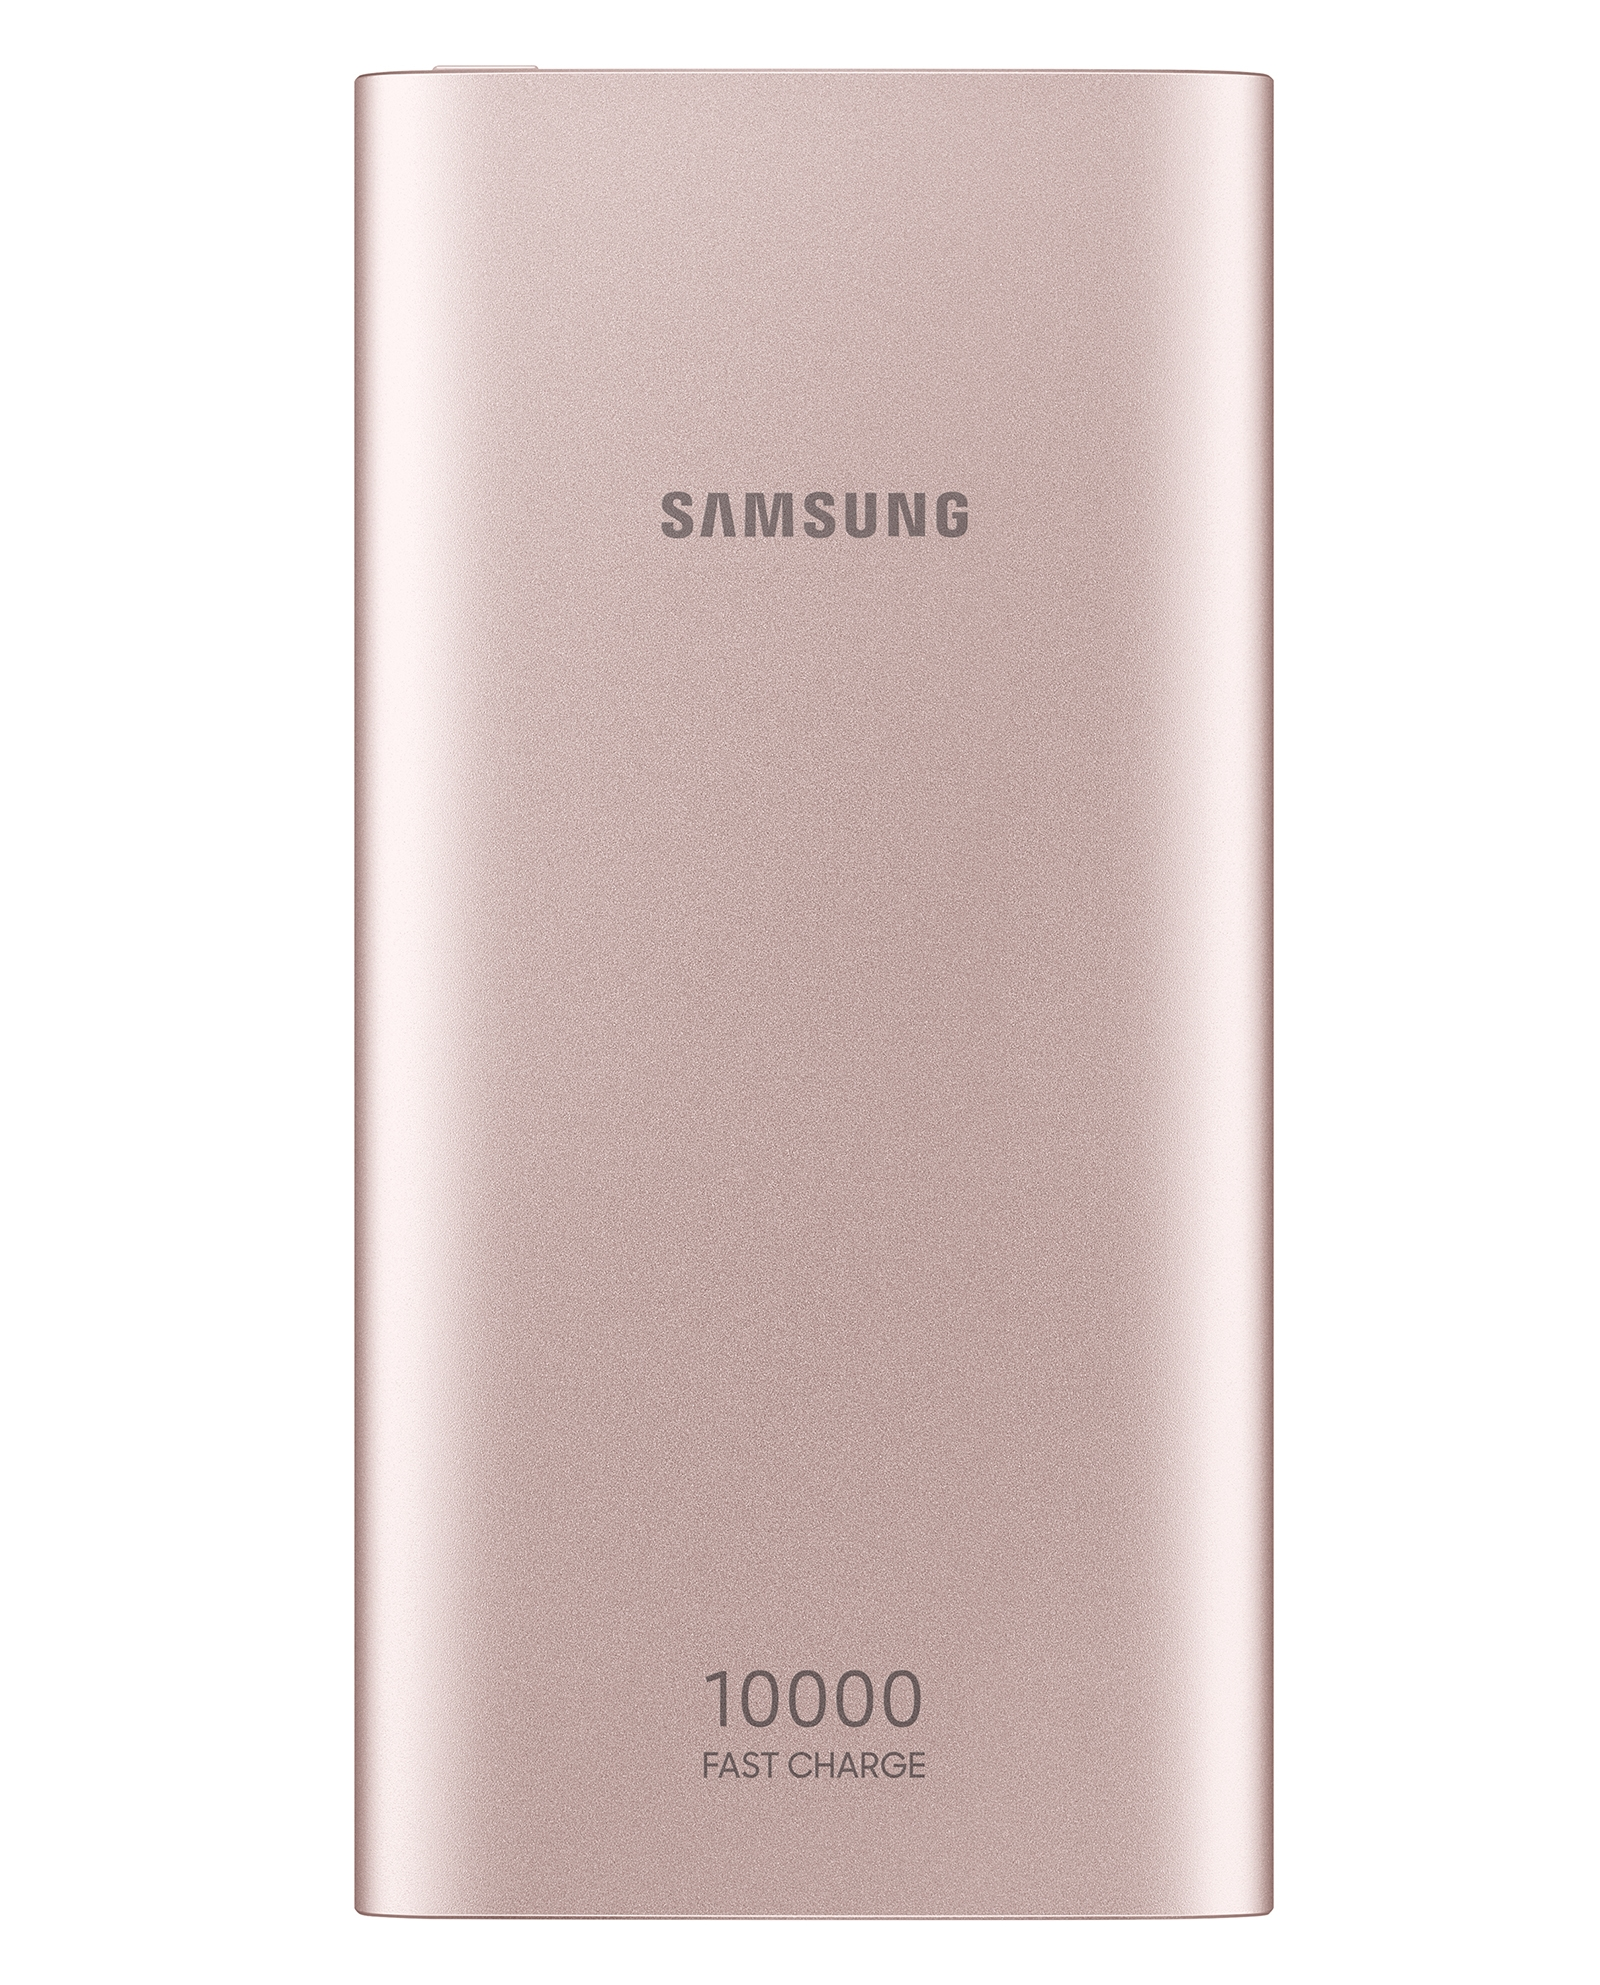 10,000 mAh Portable Battery with USB-C Cable, Pink